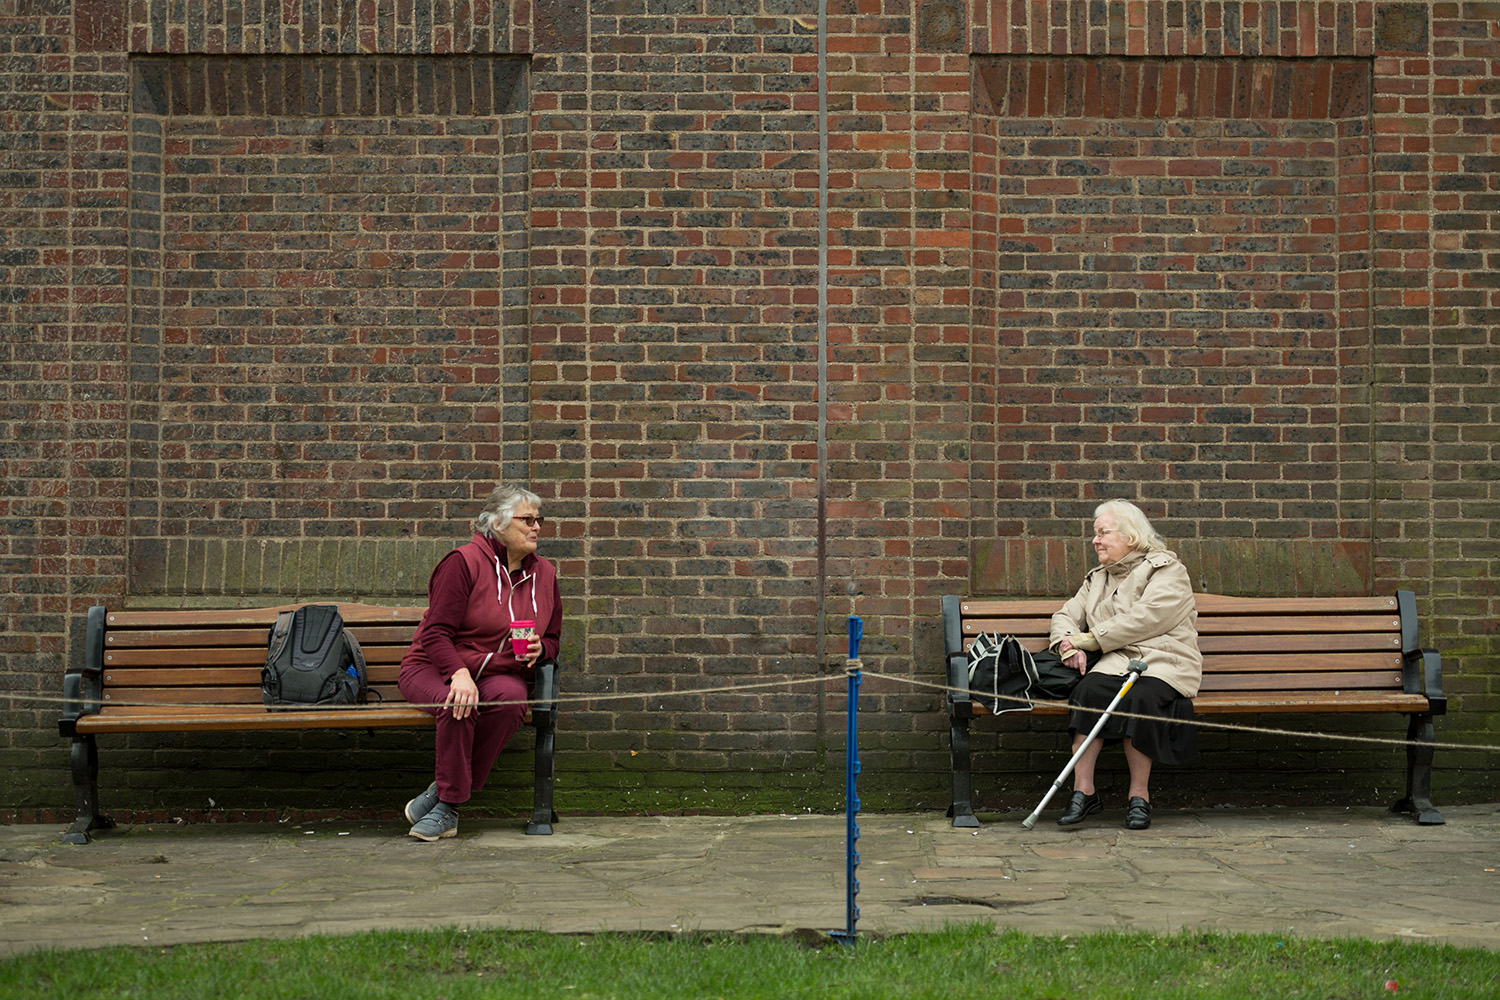 Two women observe social distancing measures amid the coronavirus outbreak as they speak to each other from adjacent park benches in York, northern England, on March 19. OLI SCARFF/AFP via Getty Images